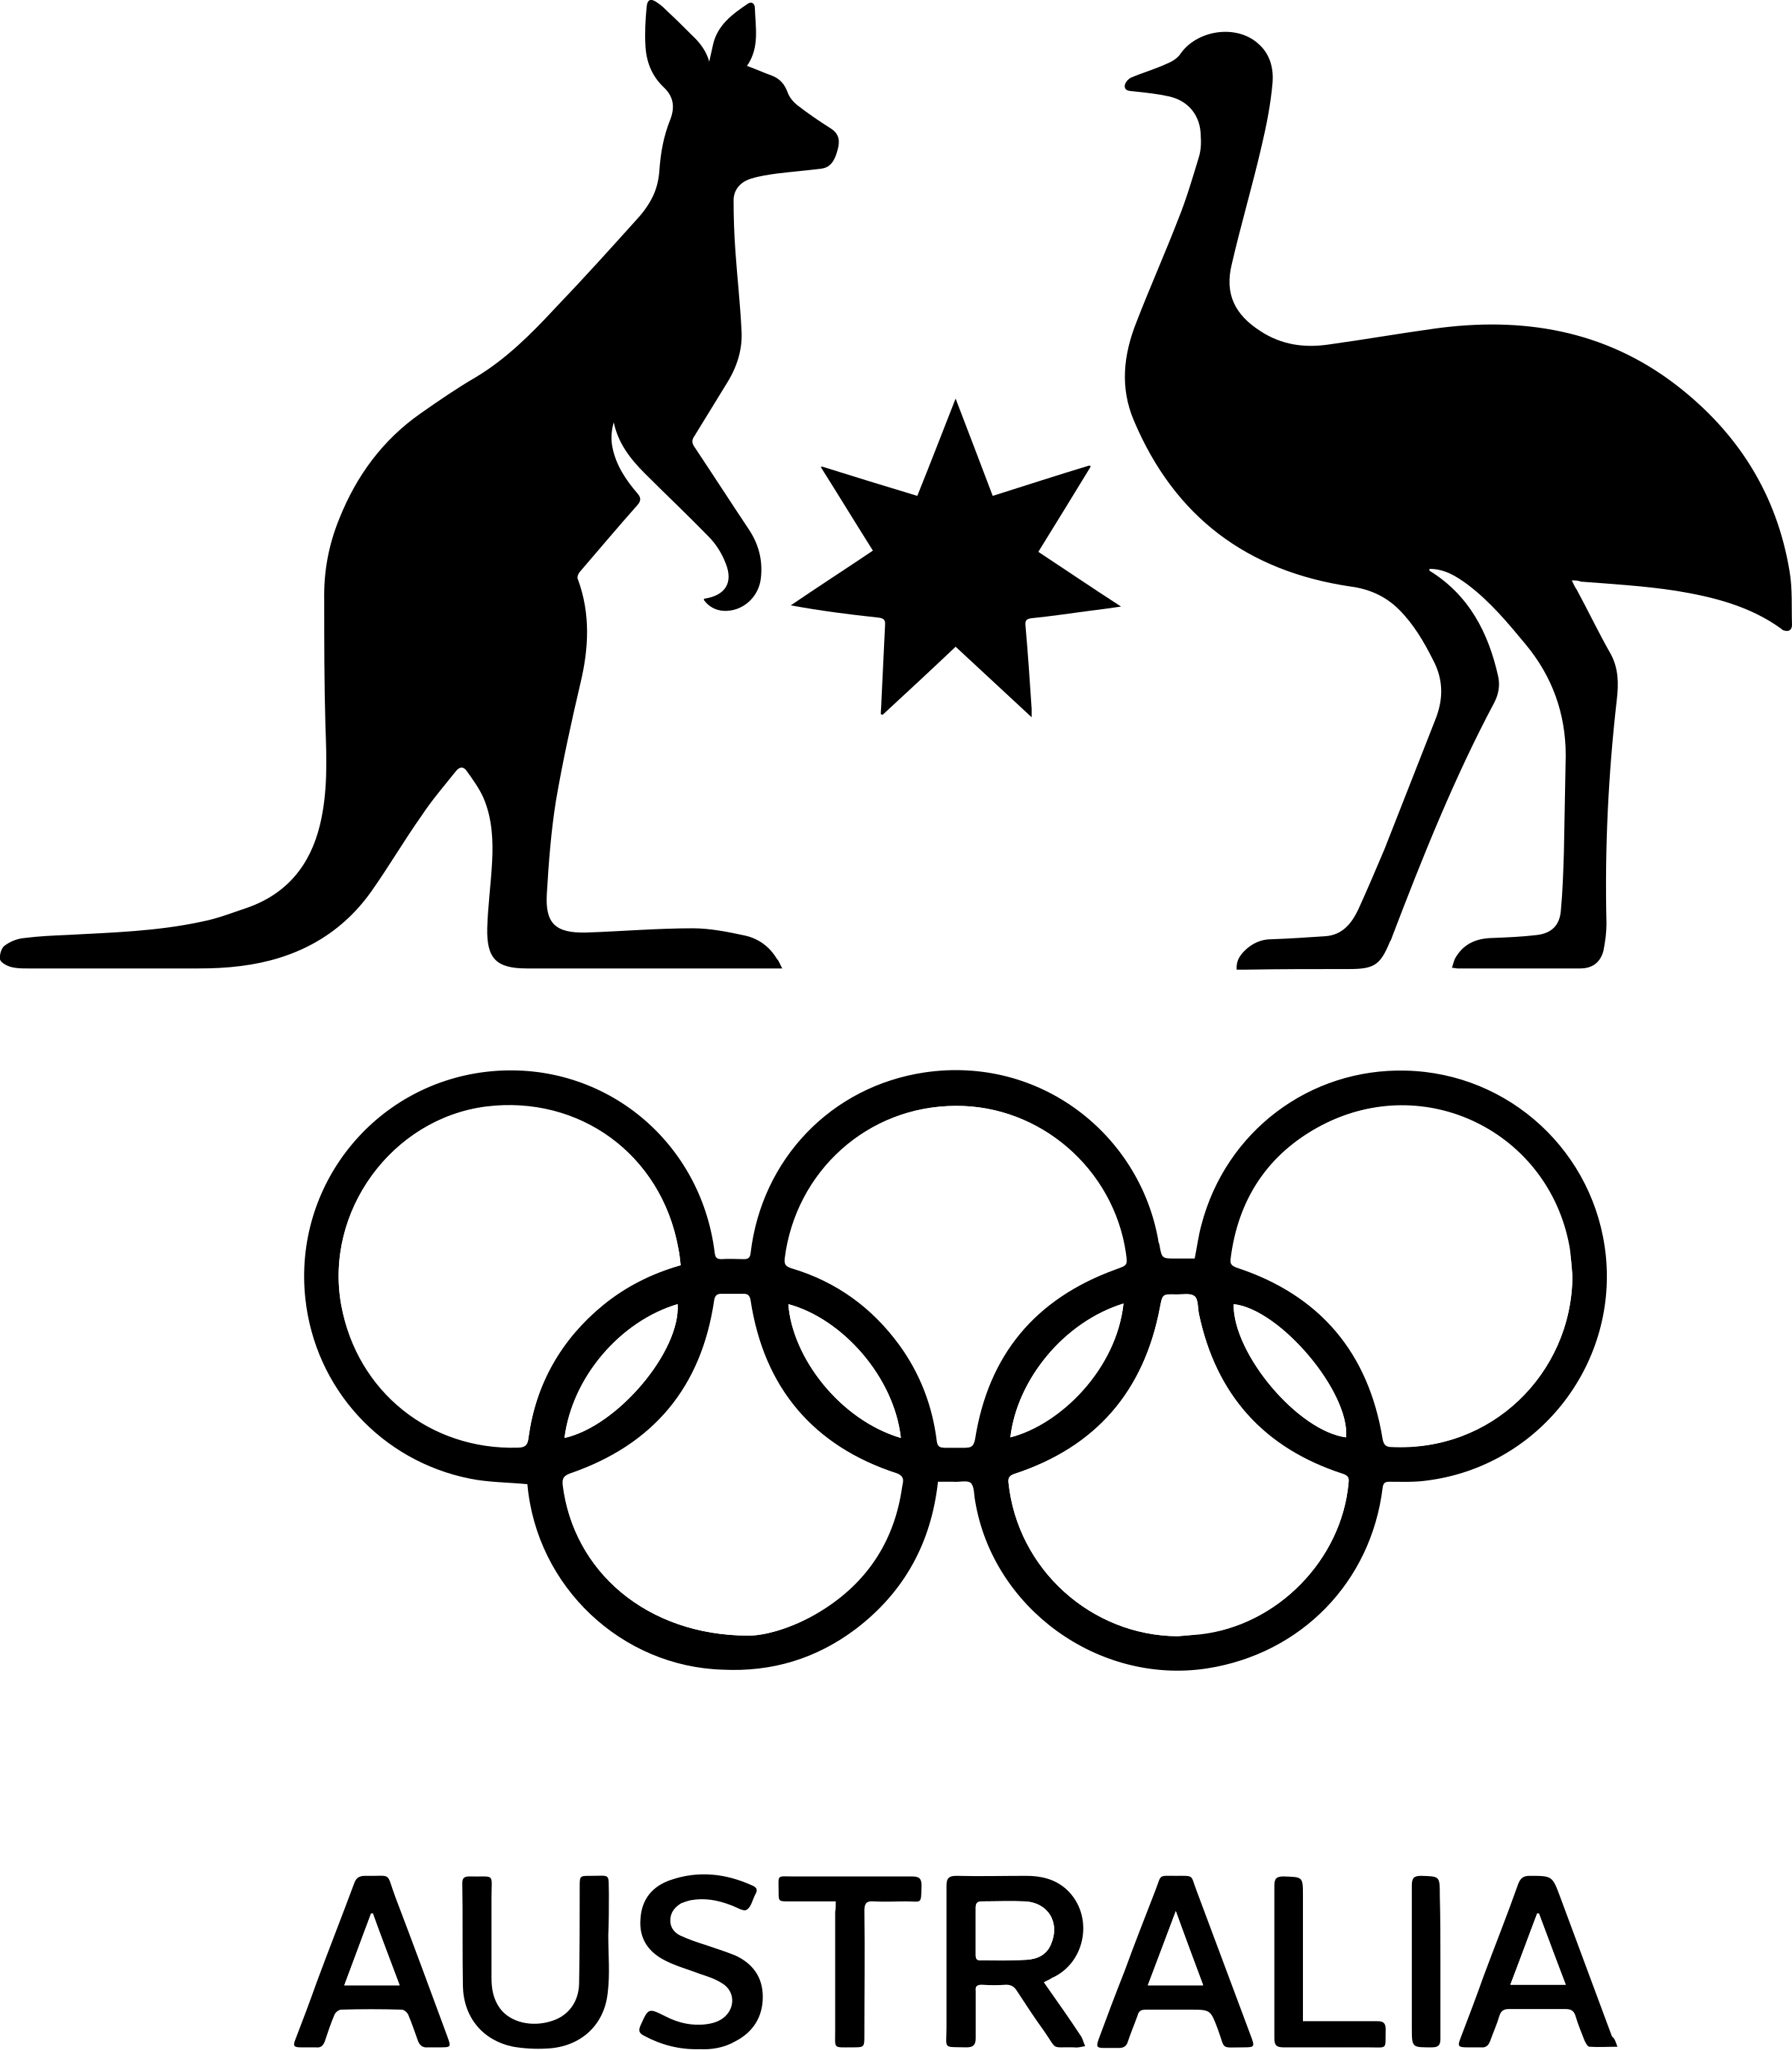 Australian Olympic Comittee Logo Png Transparent Svg Vector Freebie Supply